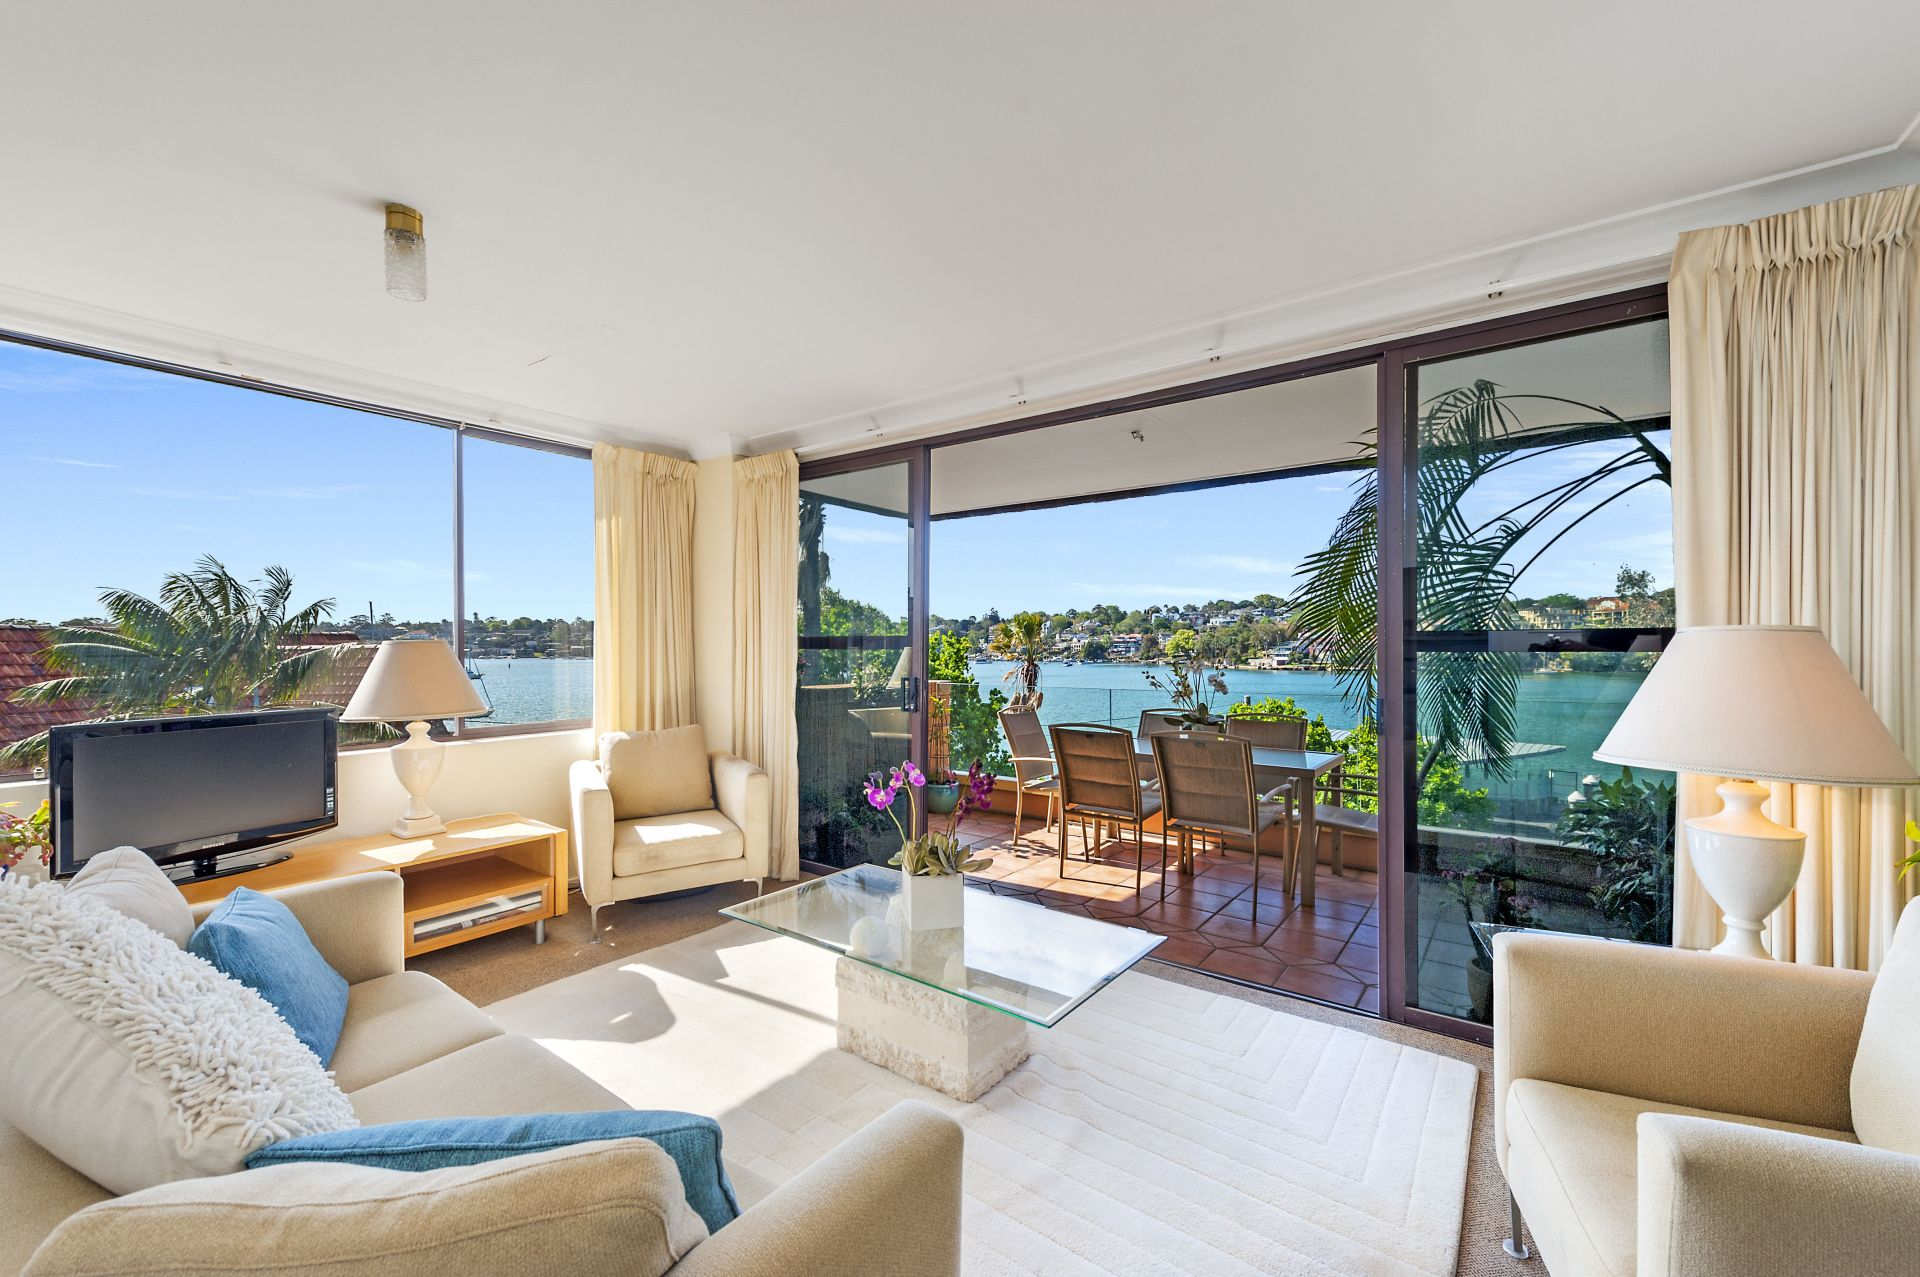 7/128 Lower St Georges Crescent, Drummoyne